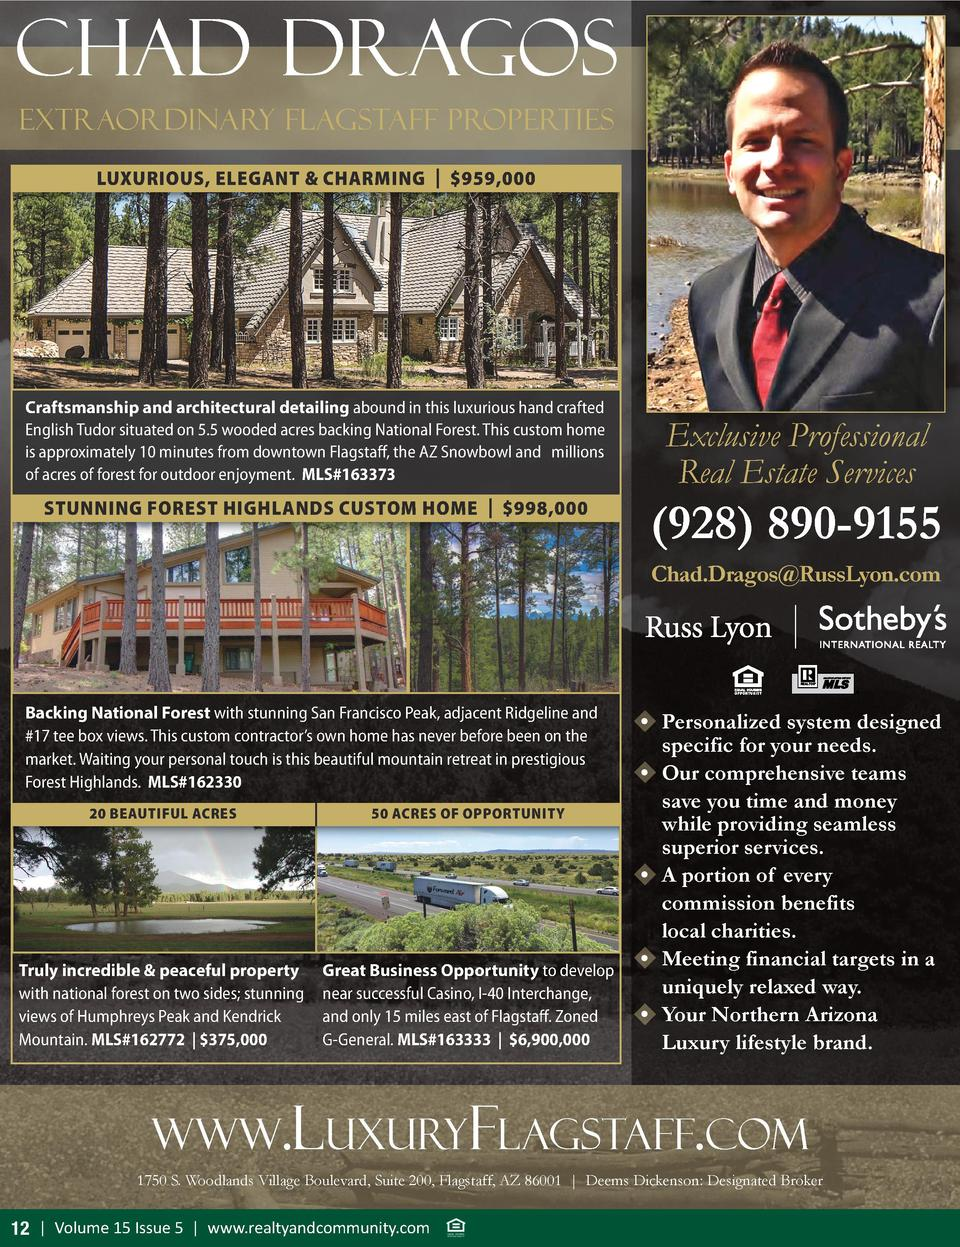 Chad Dragos Extraordinary Flagstaff Properties LUXURIOUS, ELEGANT   CHARMING    959,000  Craftsmanship and architectural d...